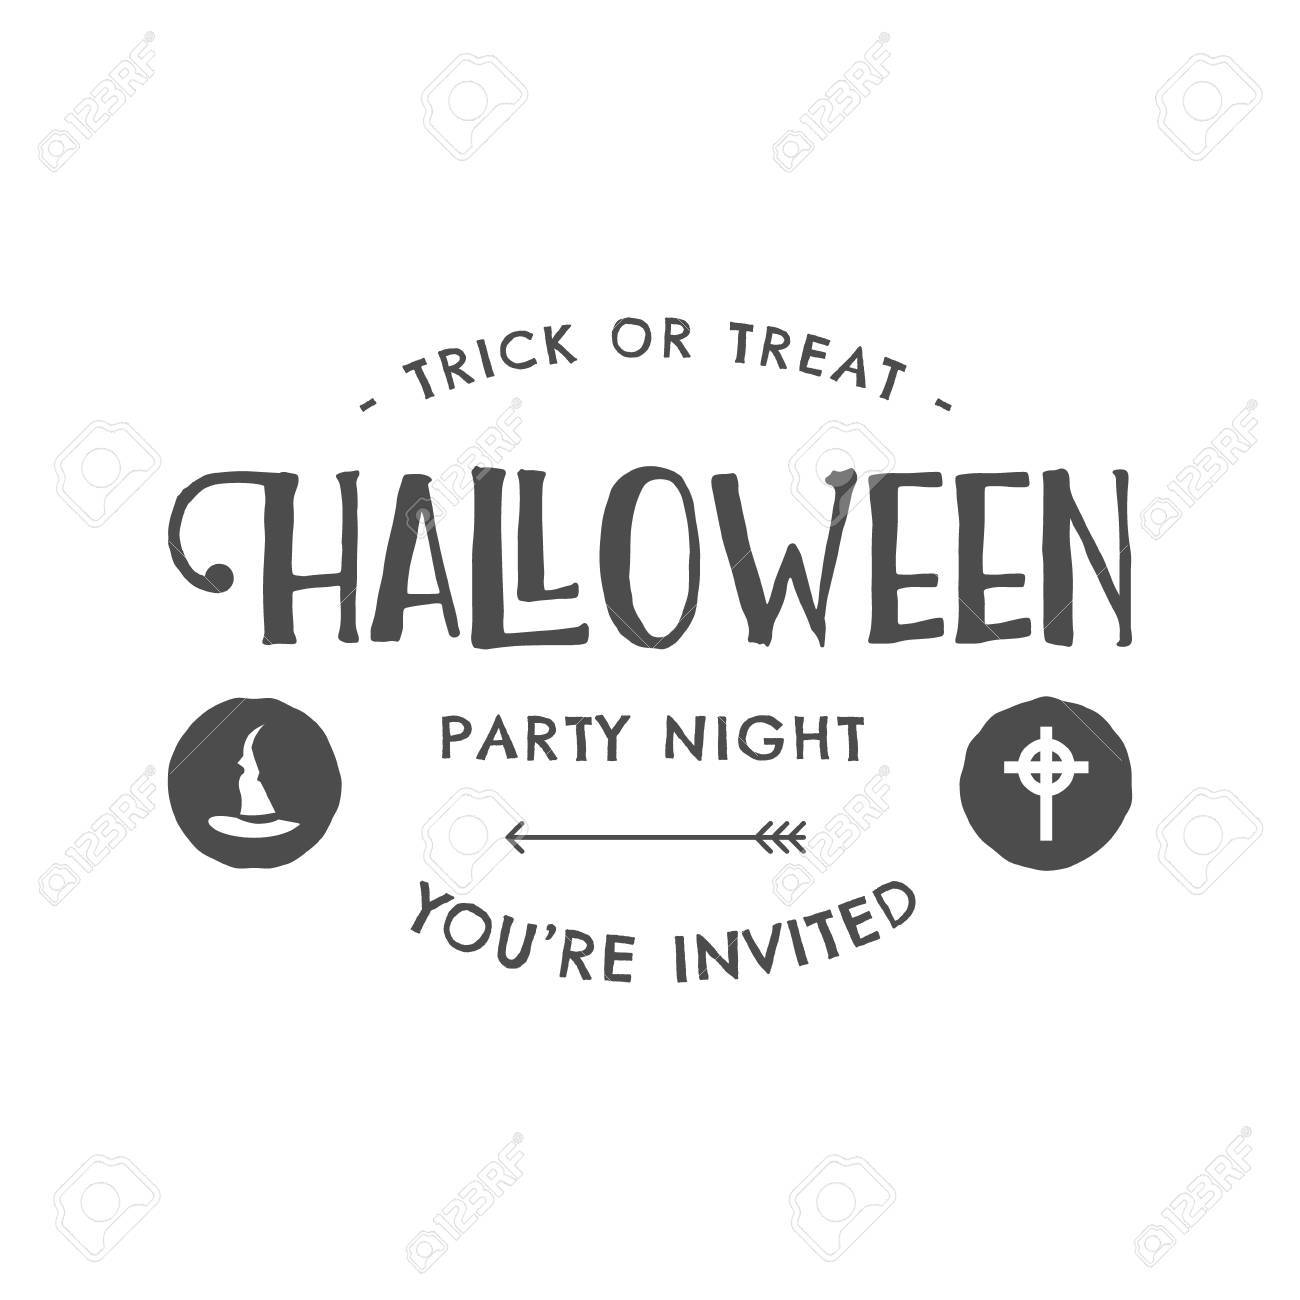 Halloween 2016 Party Invitation Label Templates With Scary Symbols ...